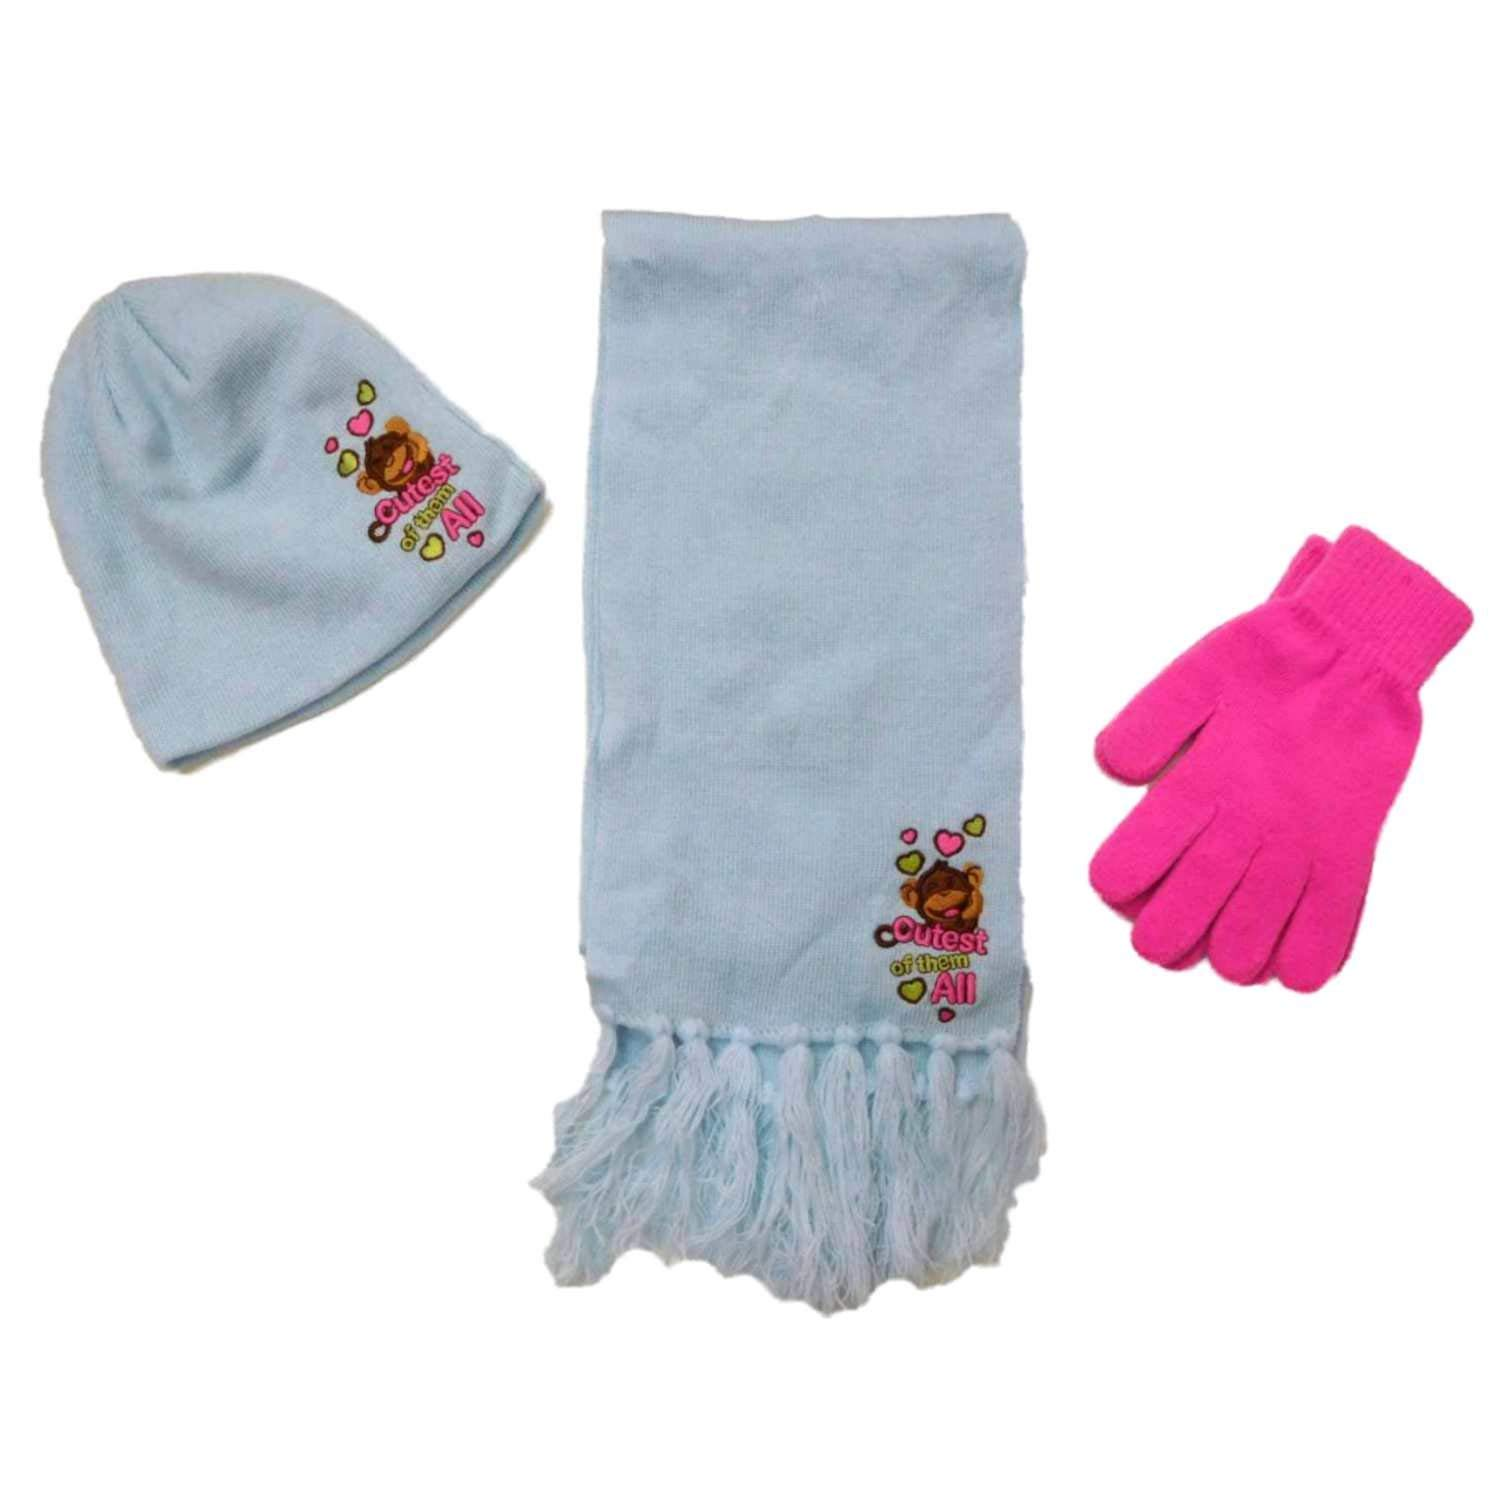 fc42cf44784 Get Quotations · Girls Blue Love Monkey Beanie Hat Gloves   Scarf Set